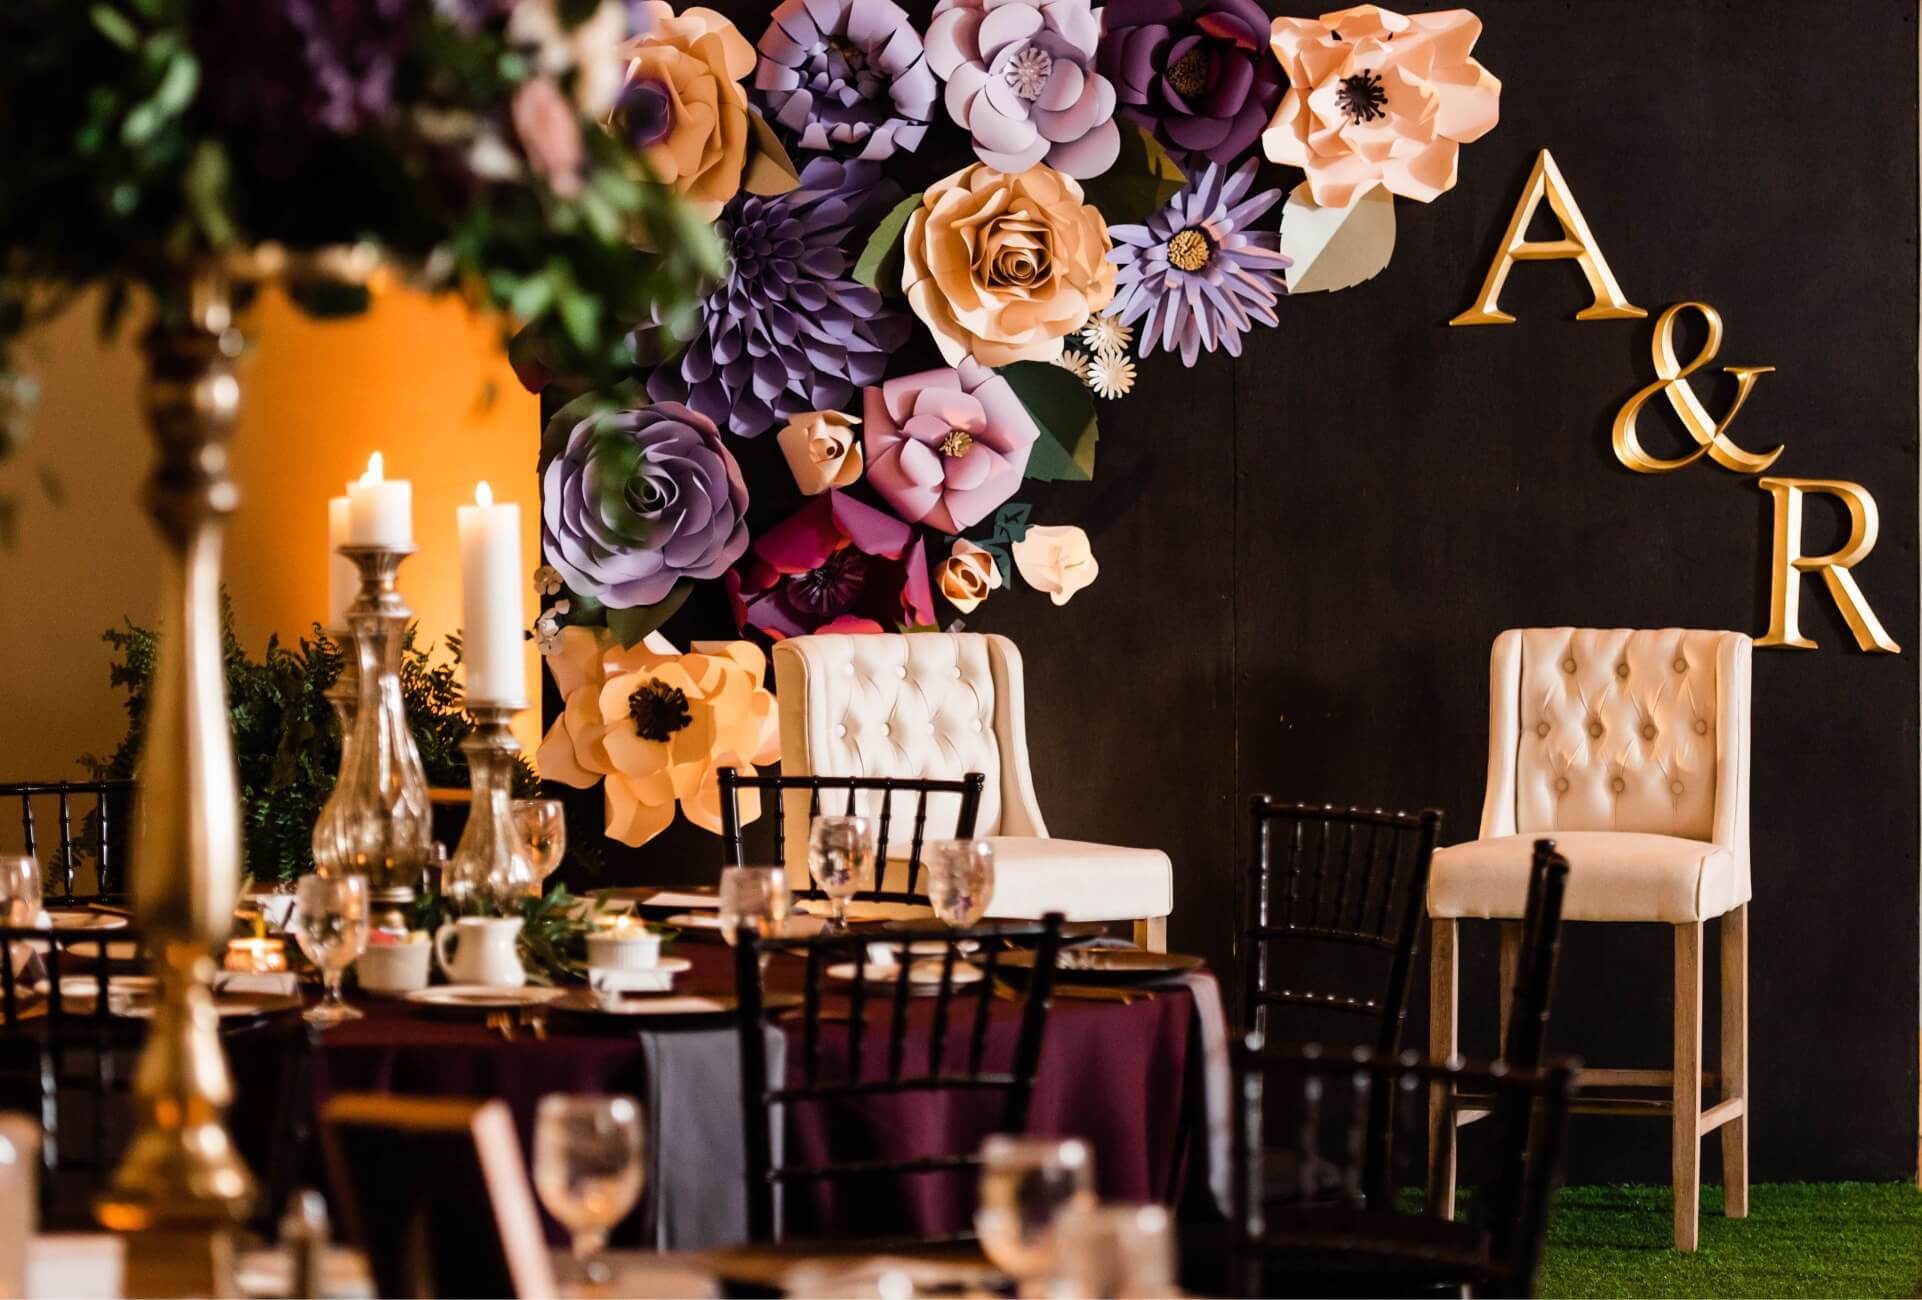 Full-service wedding catering at The Fluted Mushroom